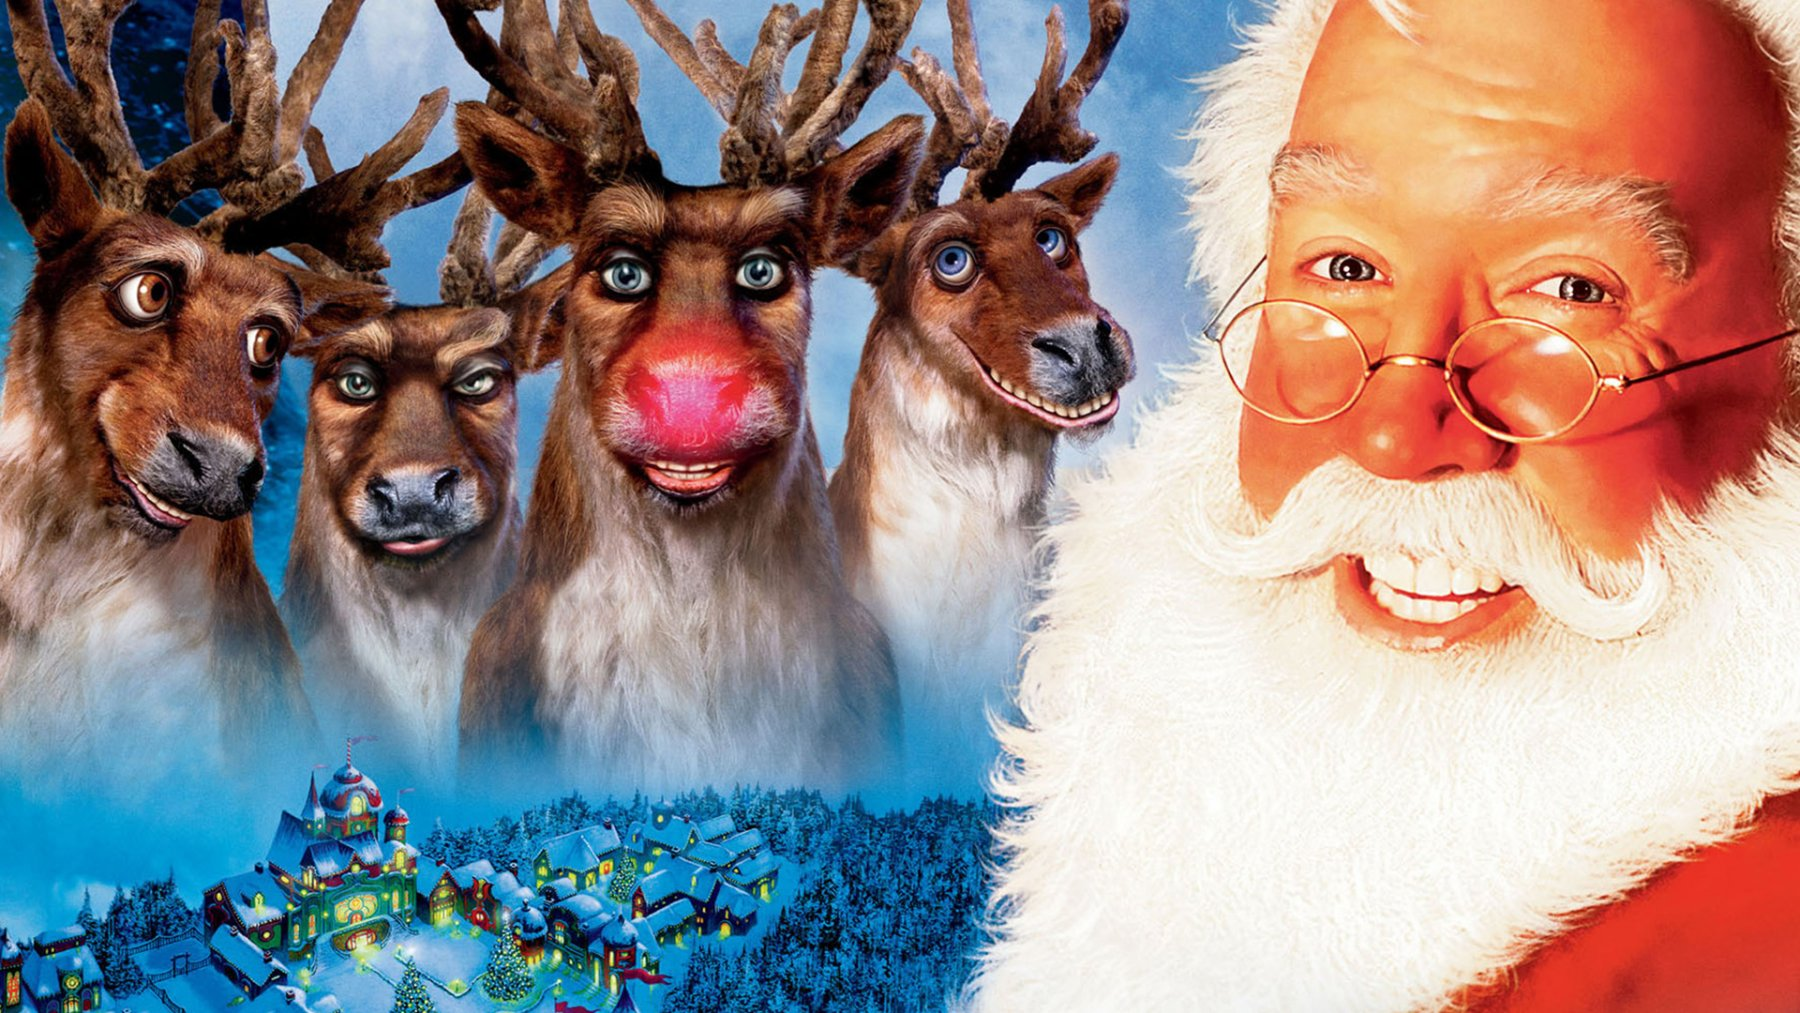 The Christmas Clause.Top 10 Highest Grossing Christmas Movies Of All Time